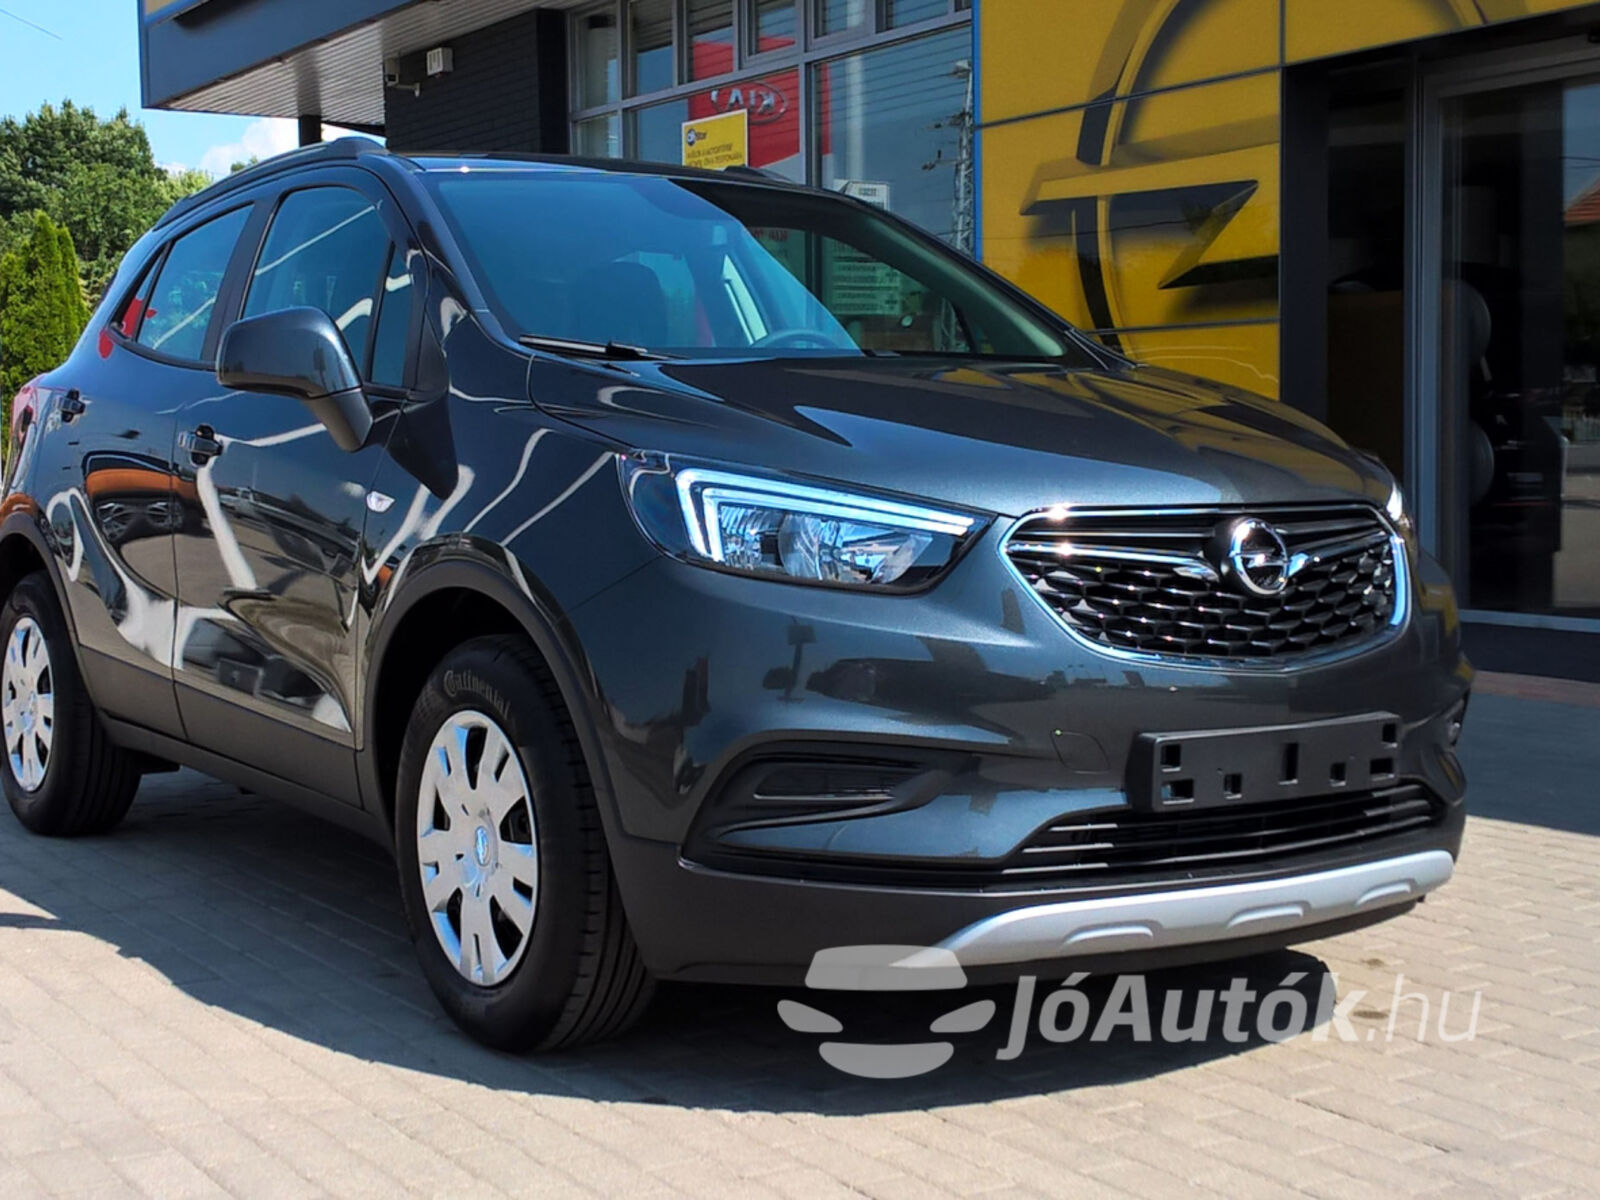 OPEL Mokka 1.6 Selection Start-Stop EURO6 - jobb eleje